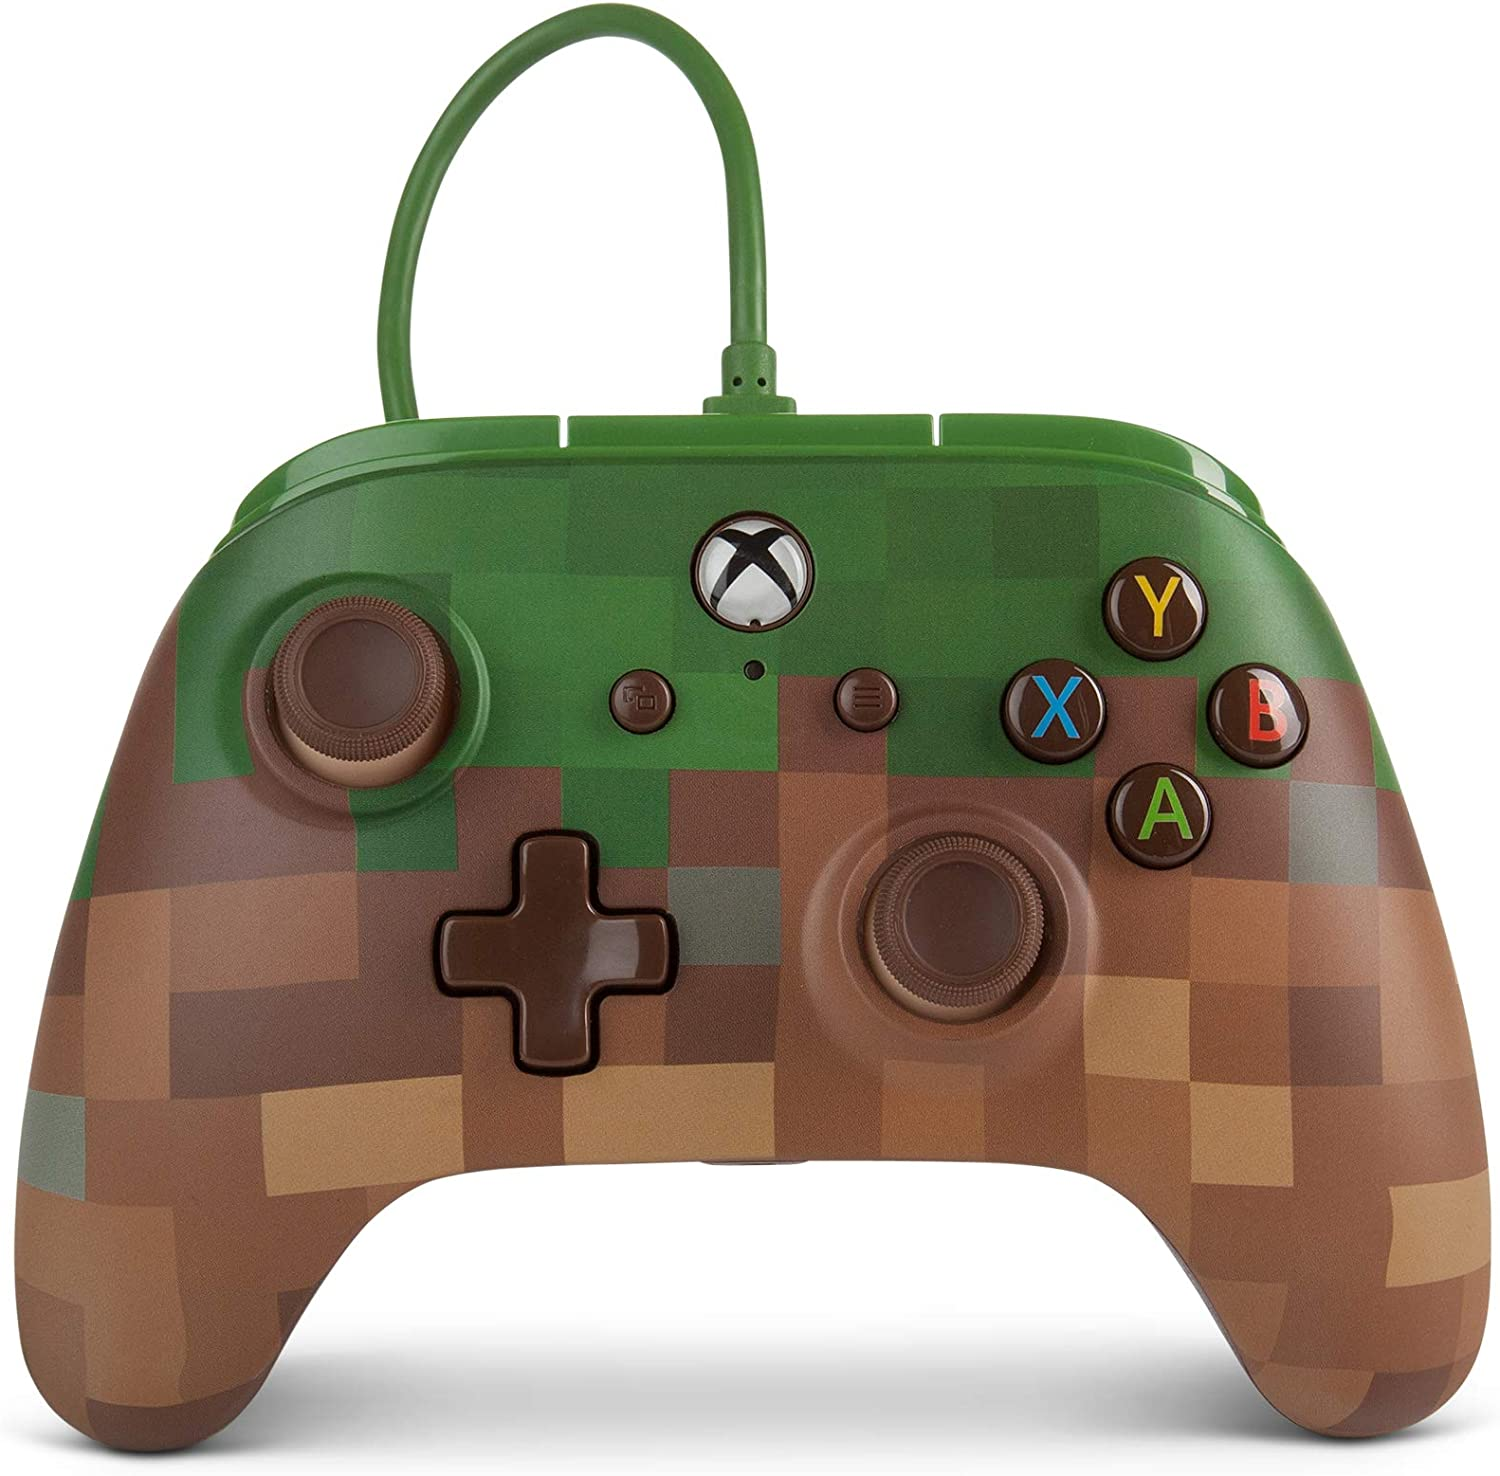 Mando inalámbrico para Xbox One de PowerA: Minecraft Grass Block ...